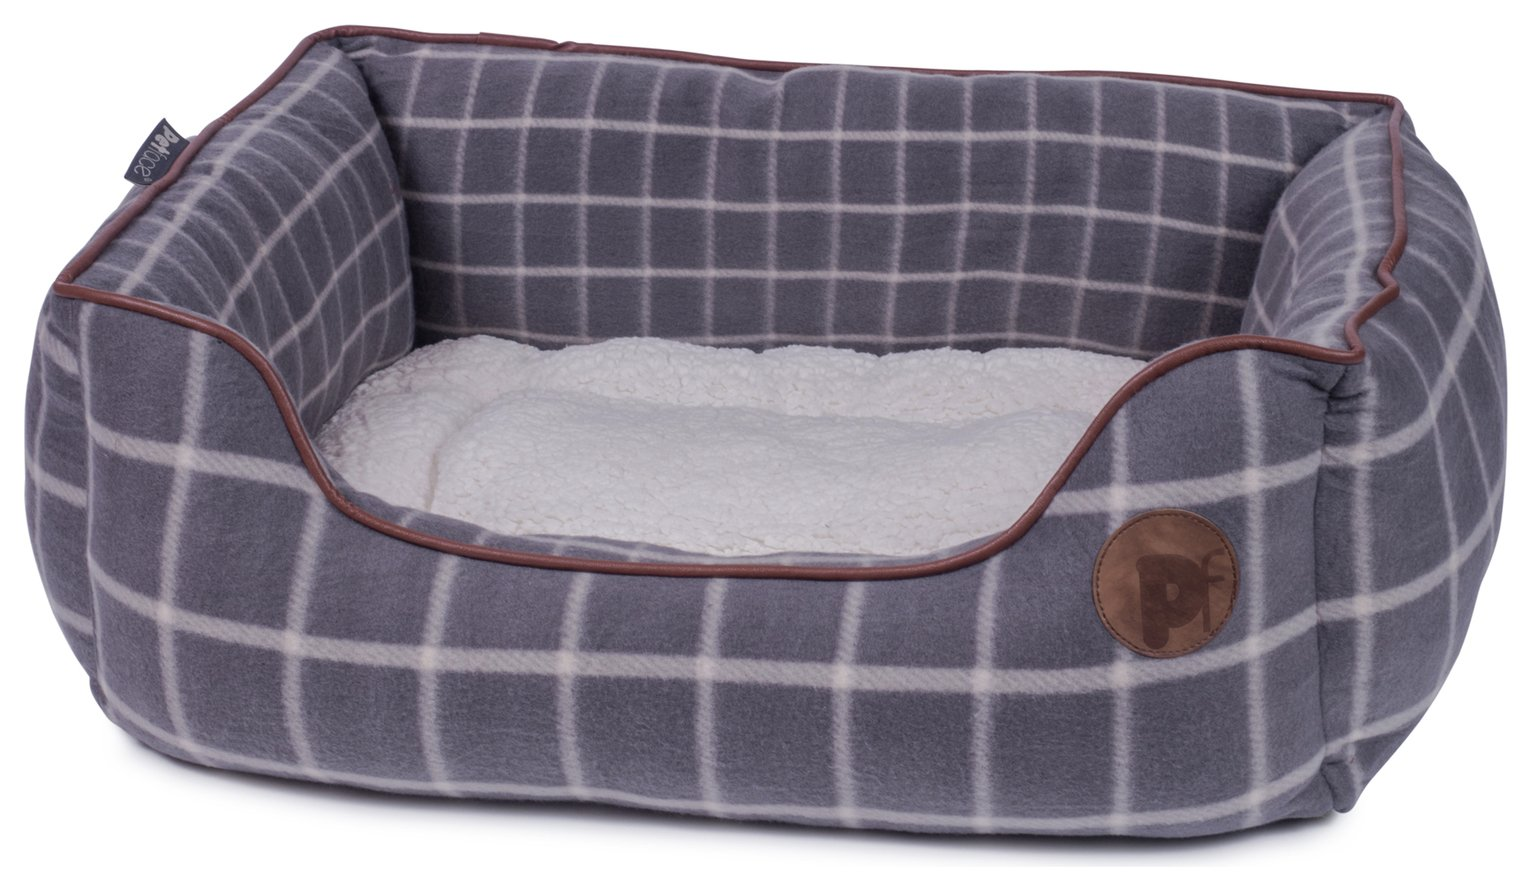 Petface Grey Window Check Square Dog Bed - Medium